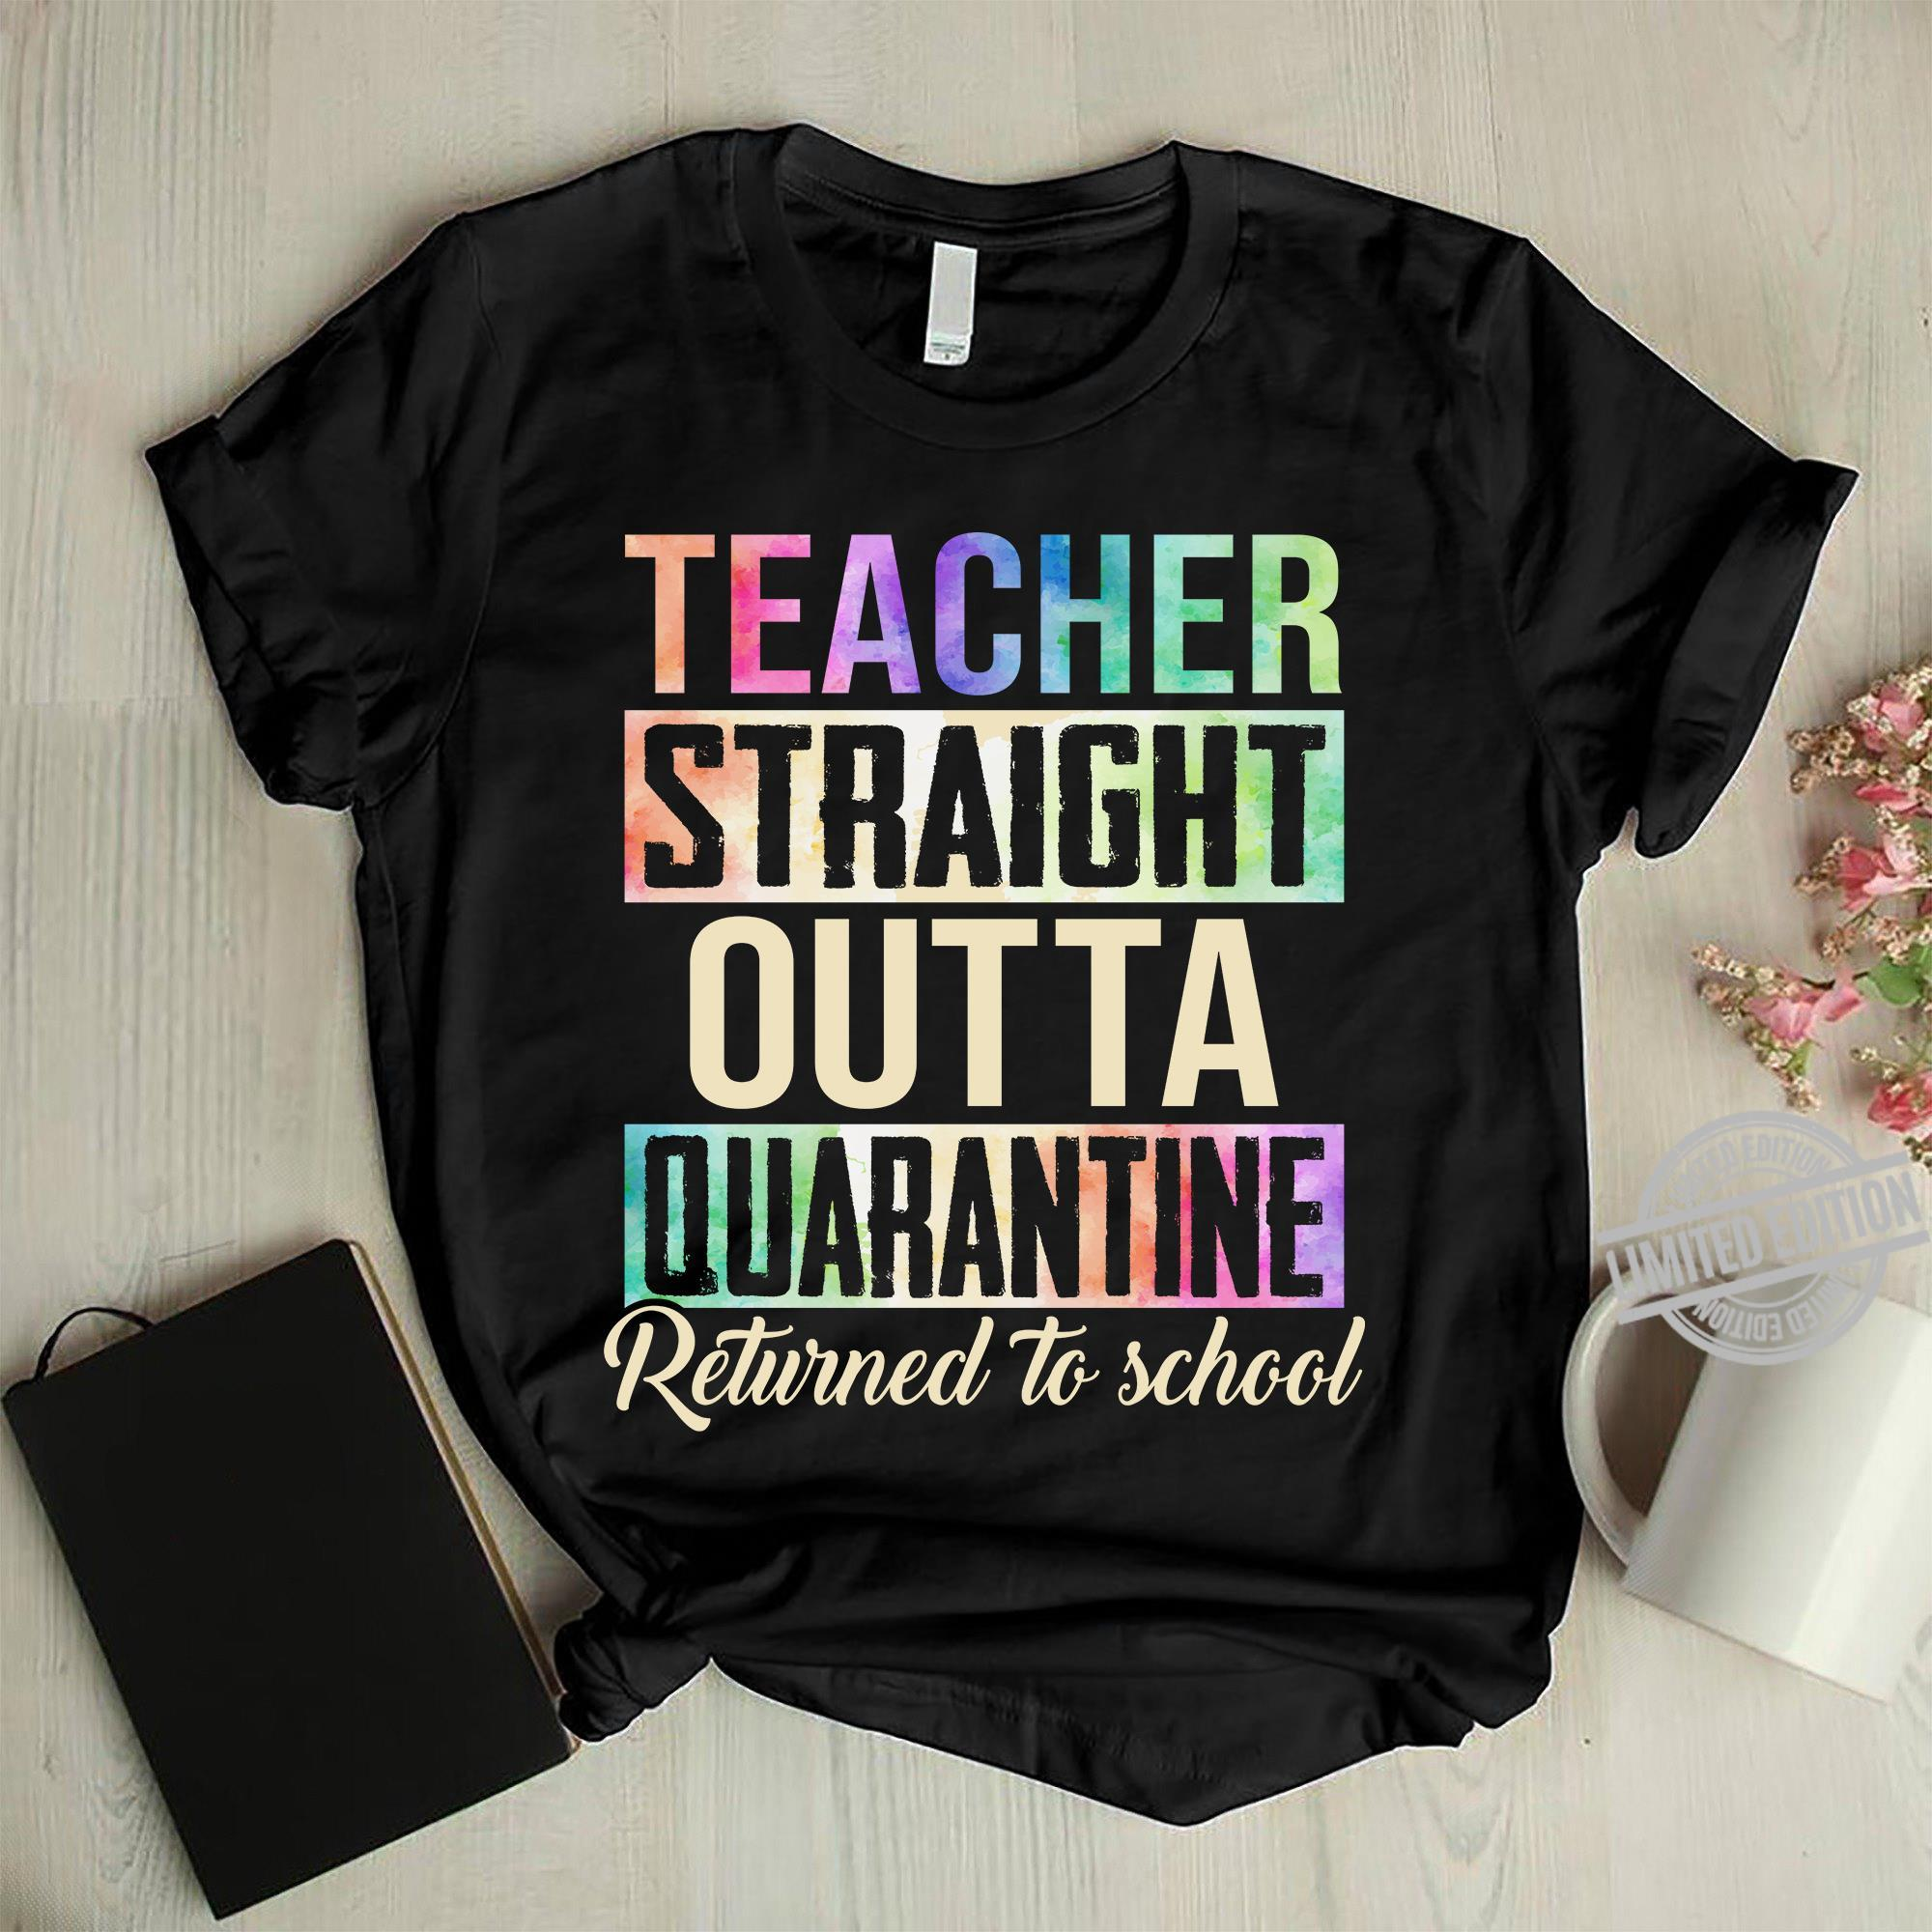 Teacher Straight Outta Quarantine Returned To Scholl Shirt